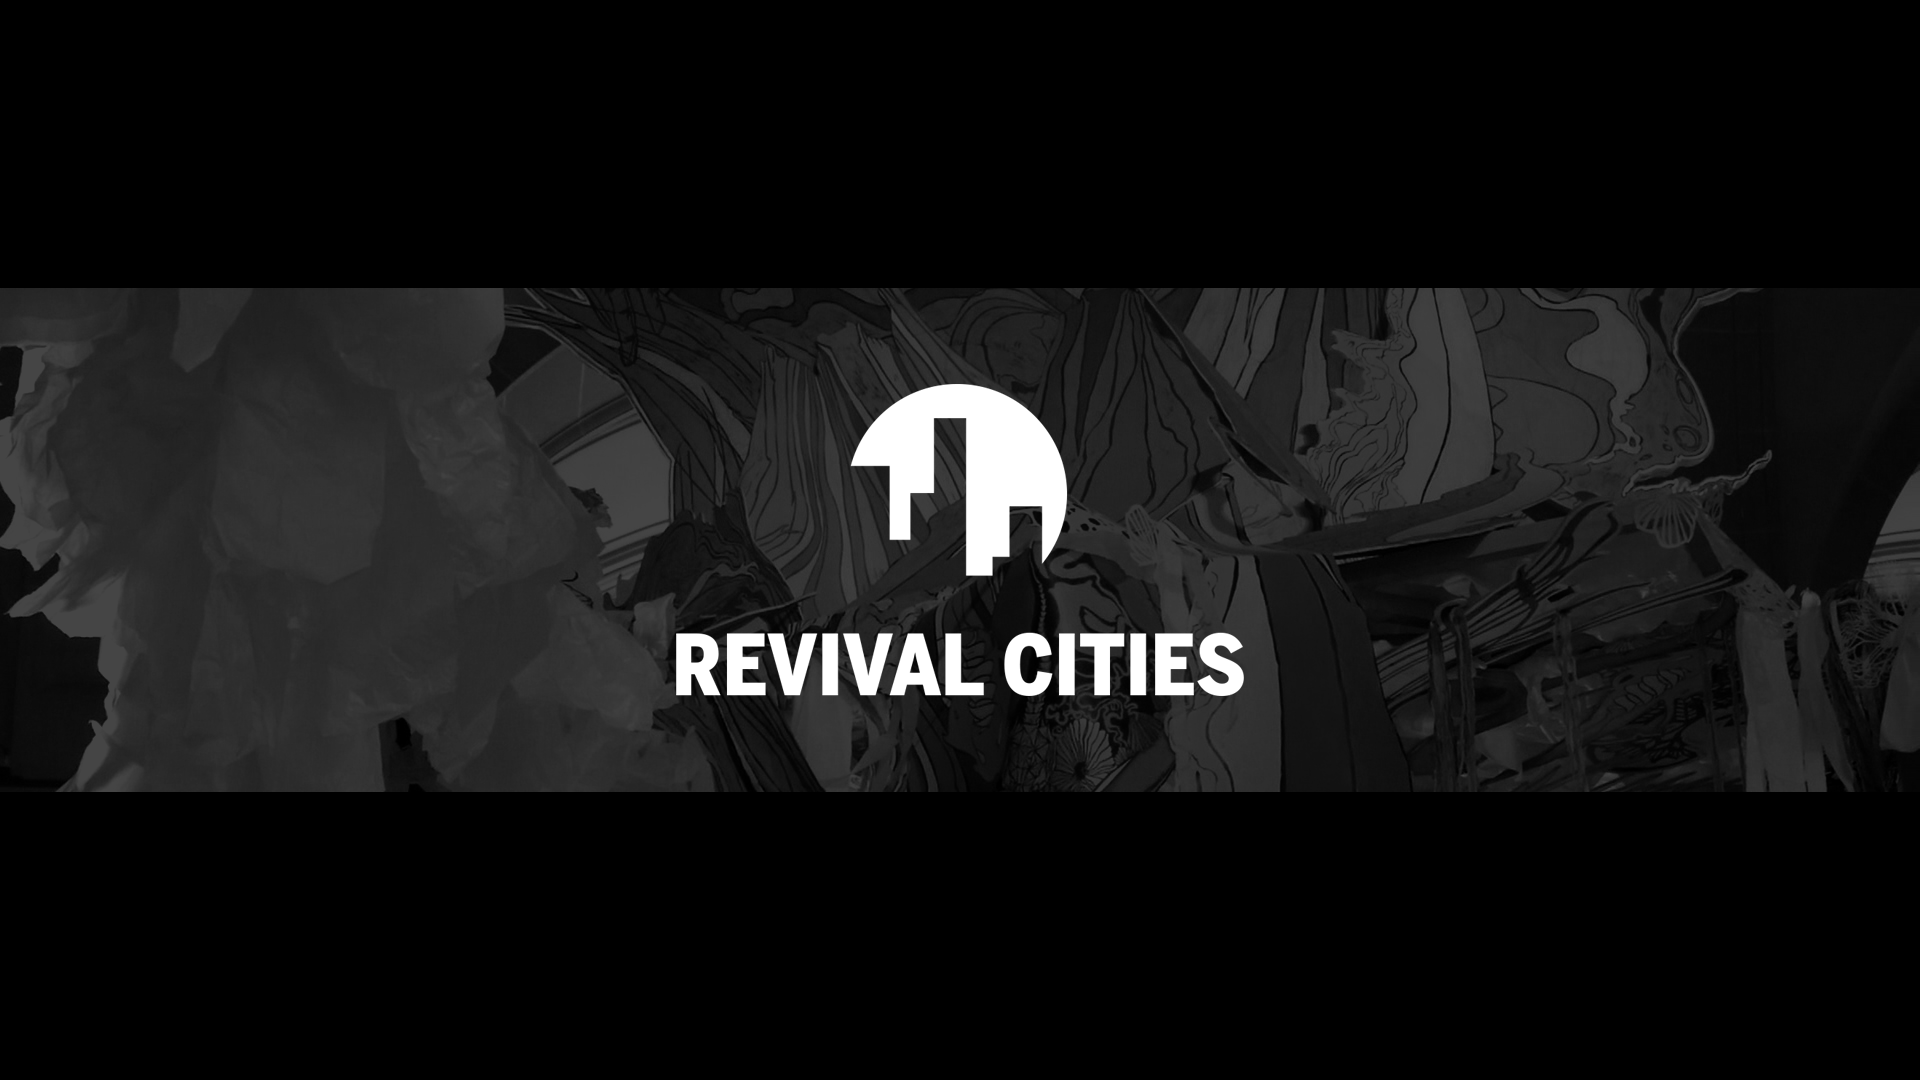 Revival Cities